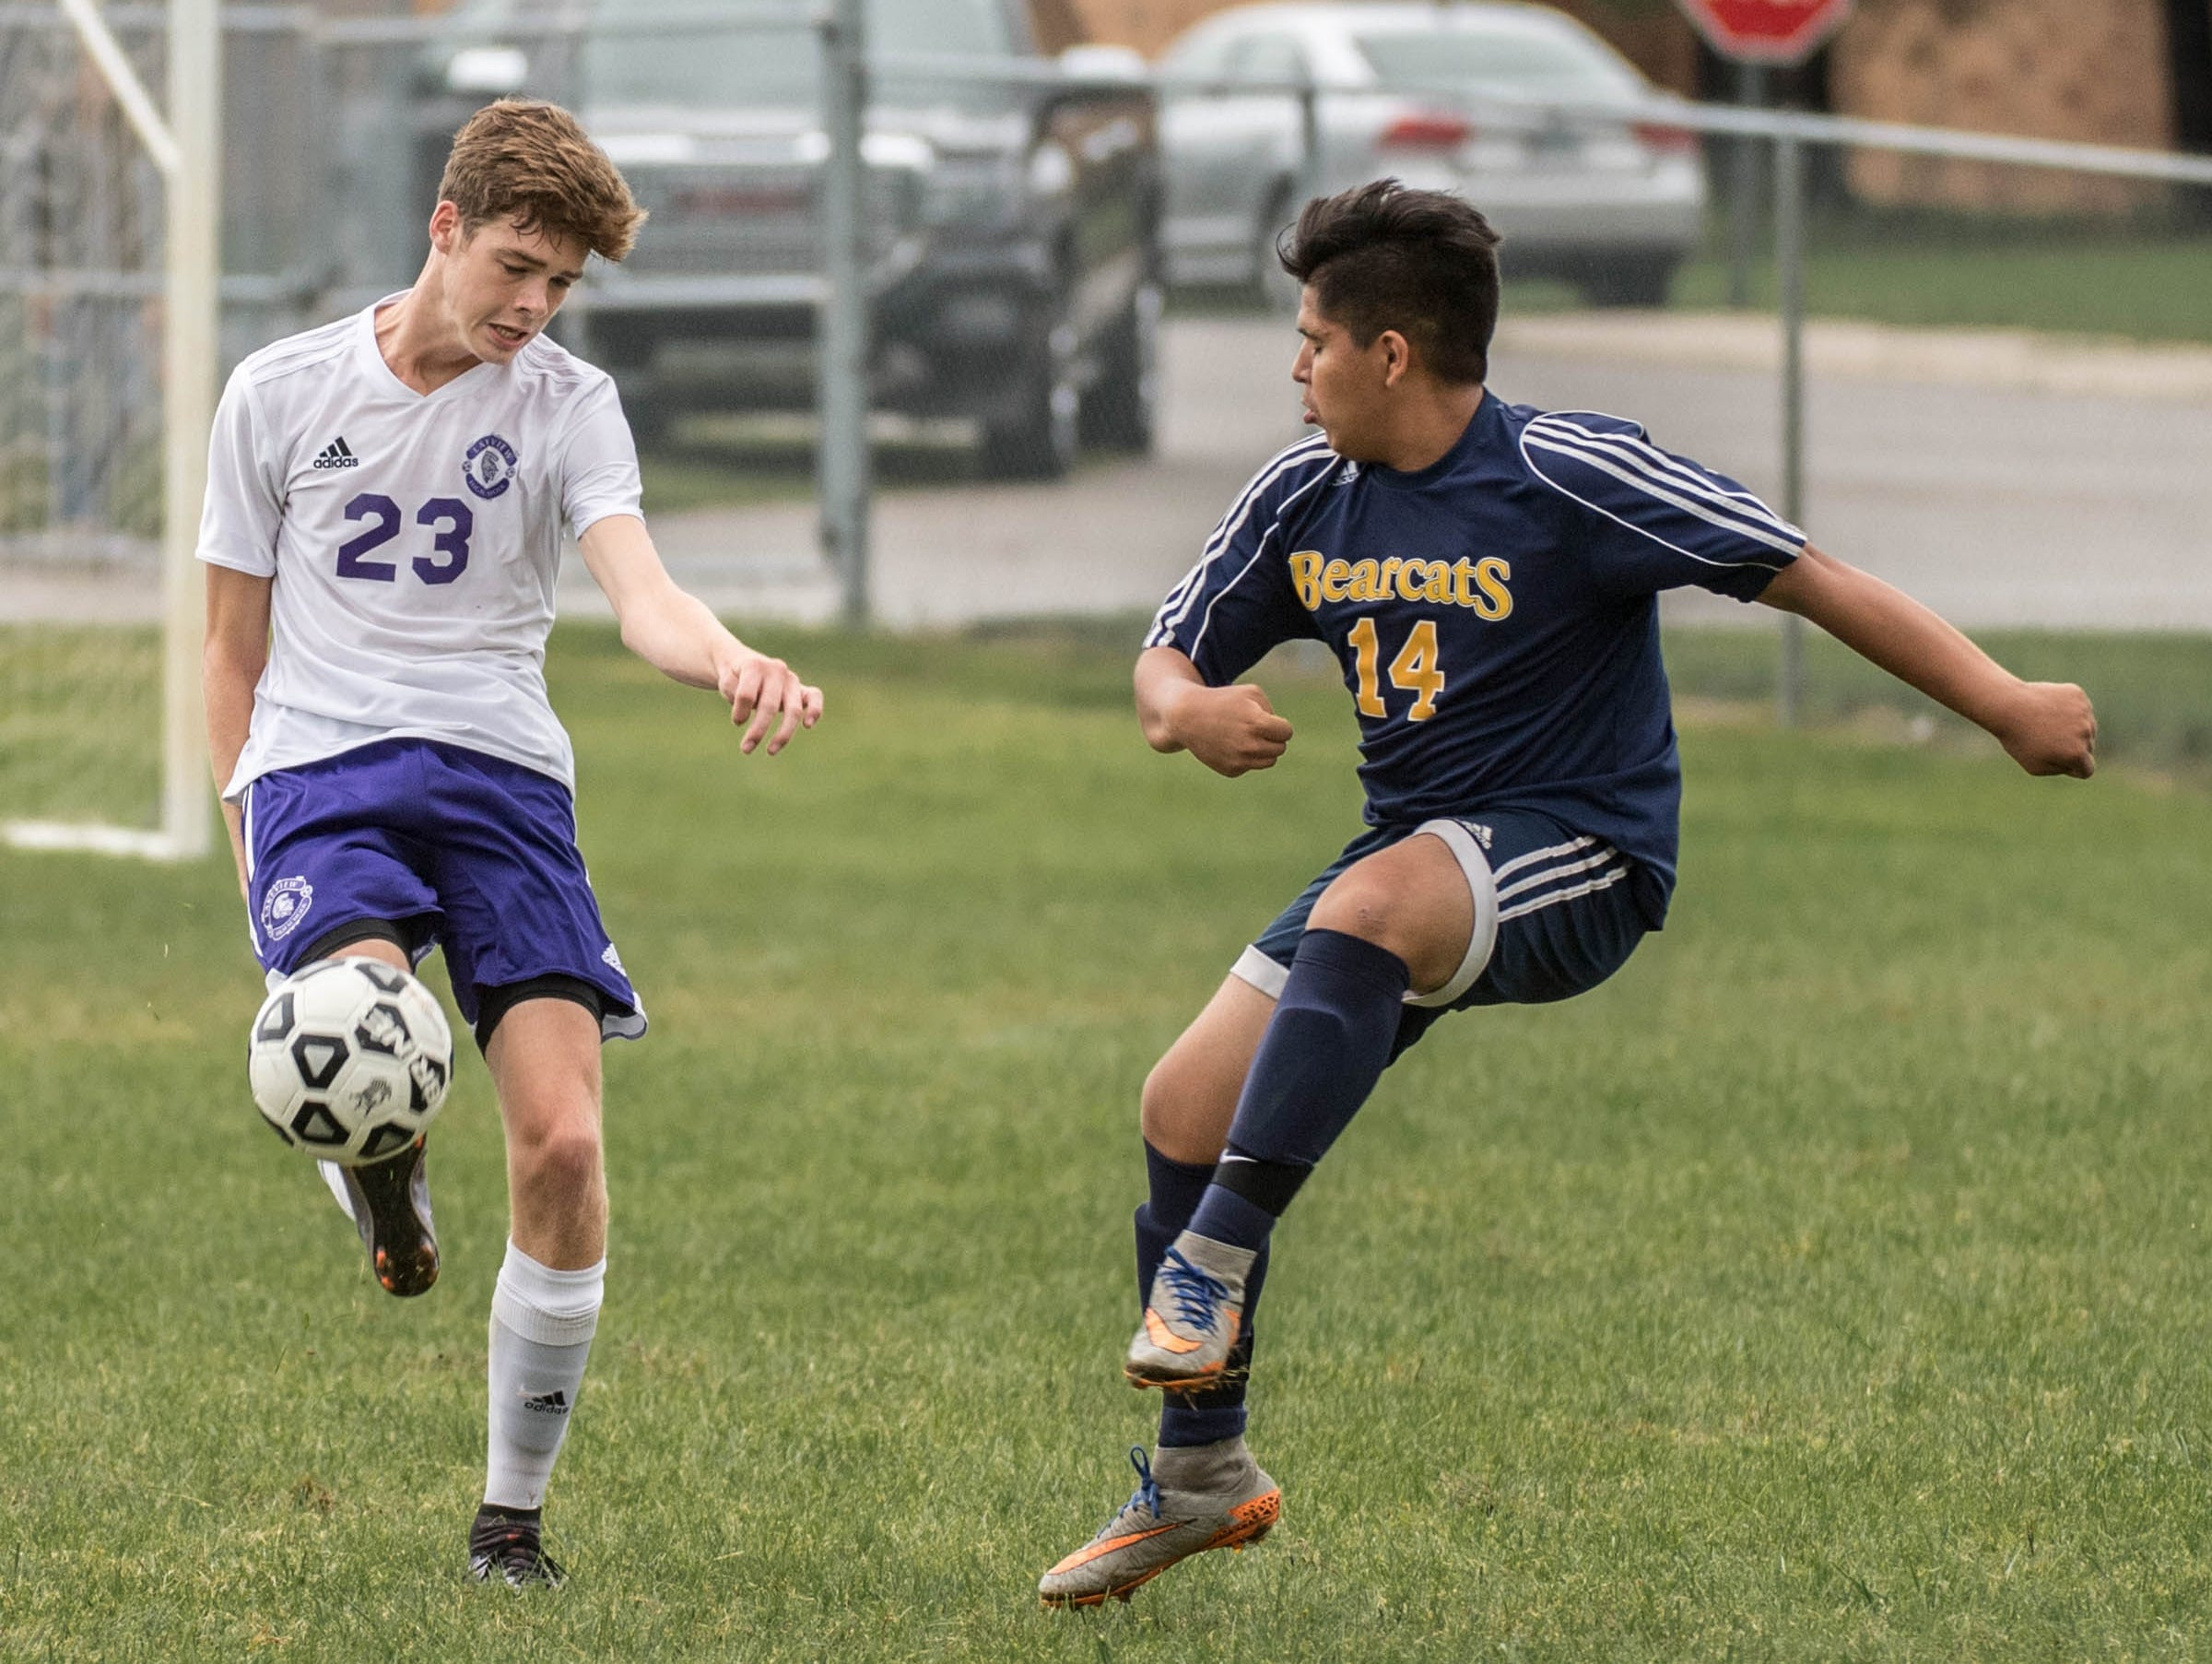 Lakeview's Cooper Grosteffon (23) and Battle Creek Central's Jose Chavez (14) during the All-City Soccer Championship on Saturday.